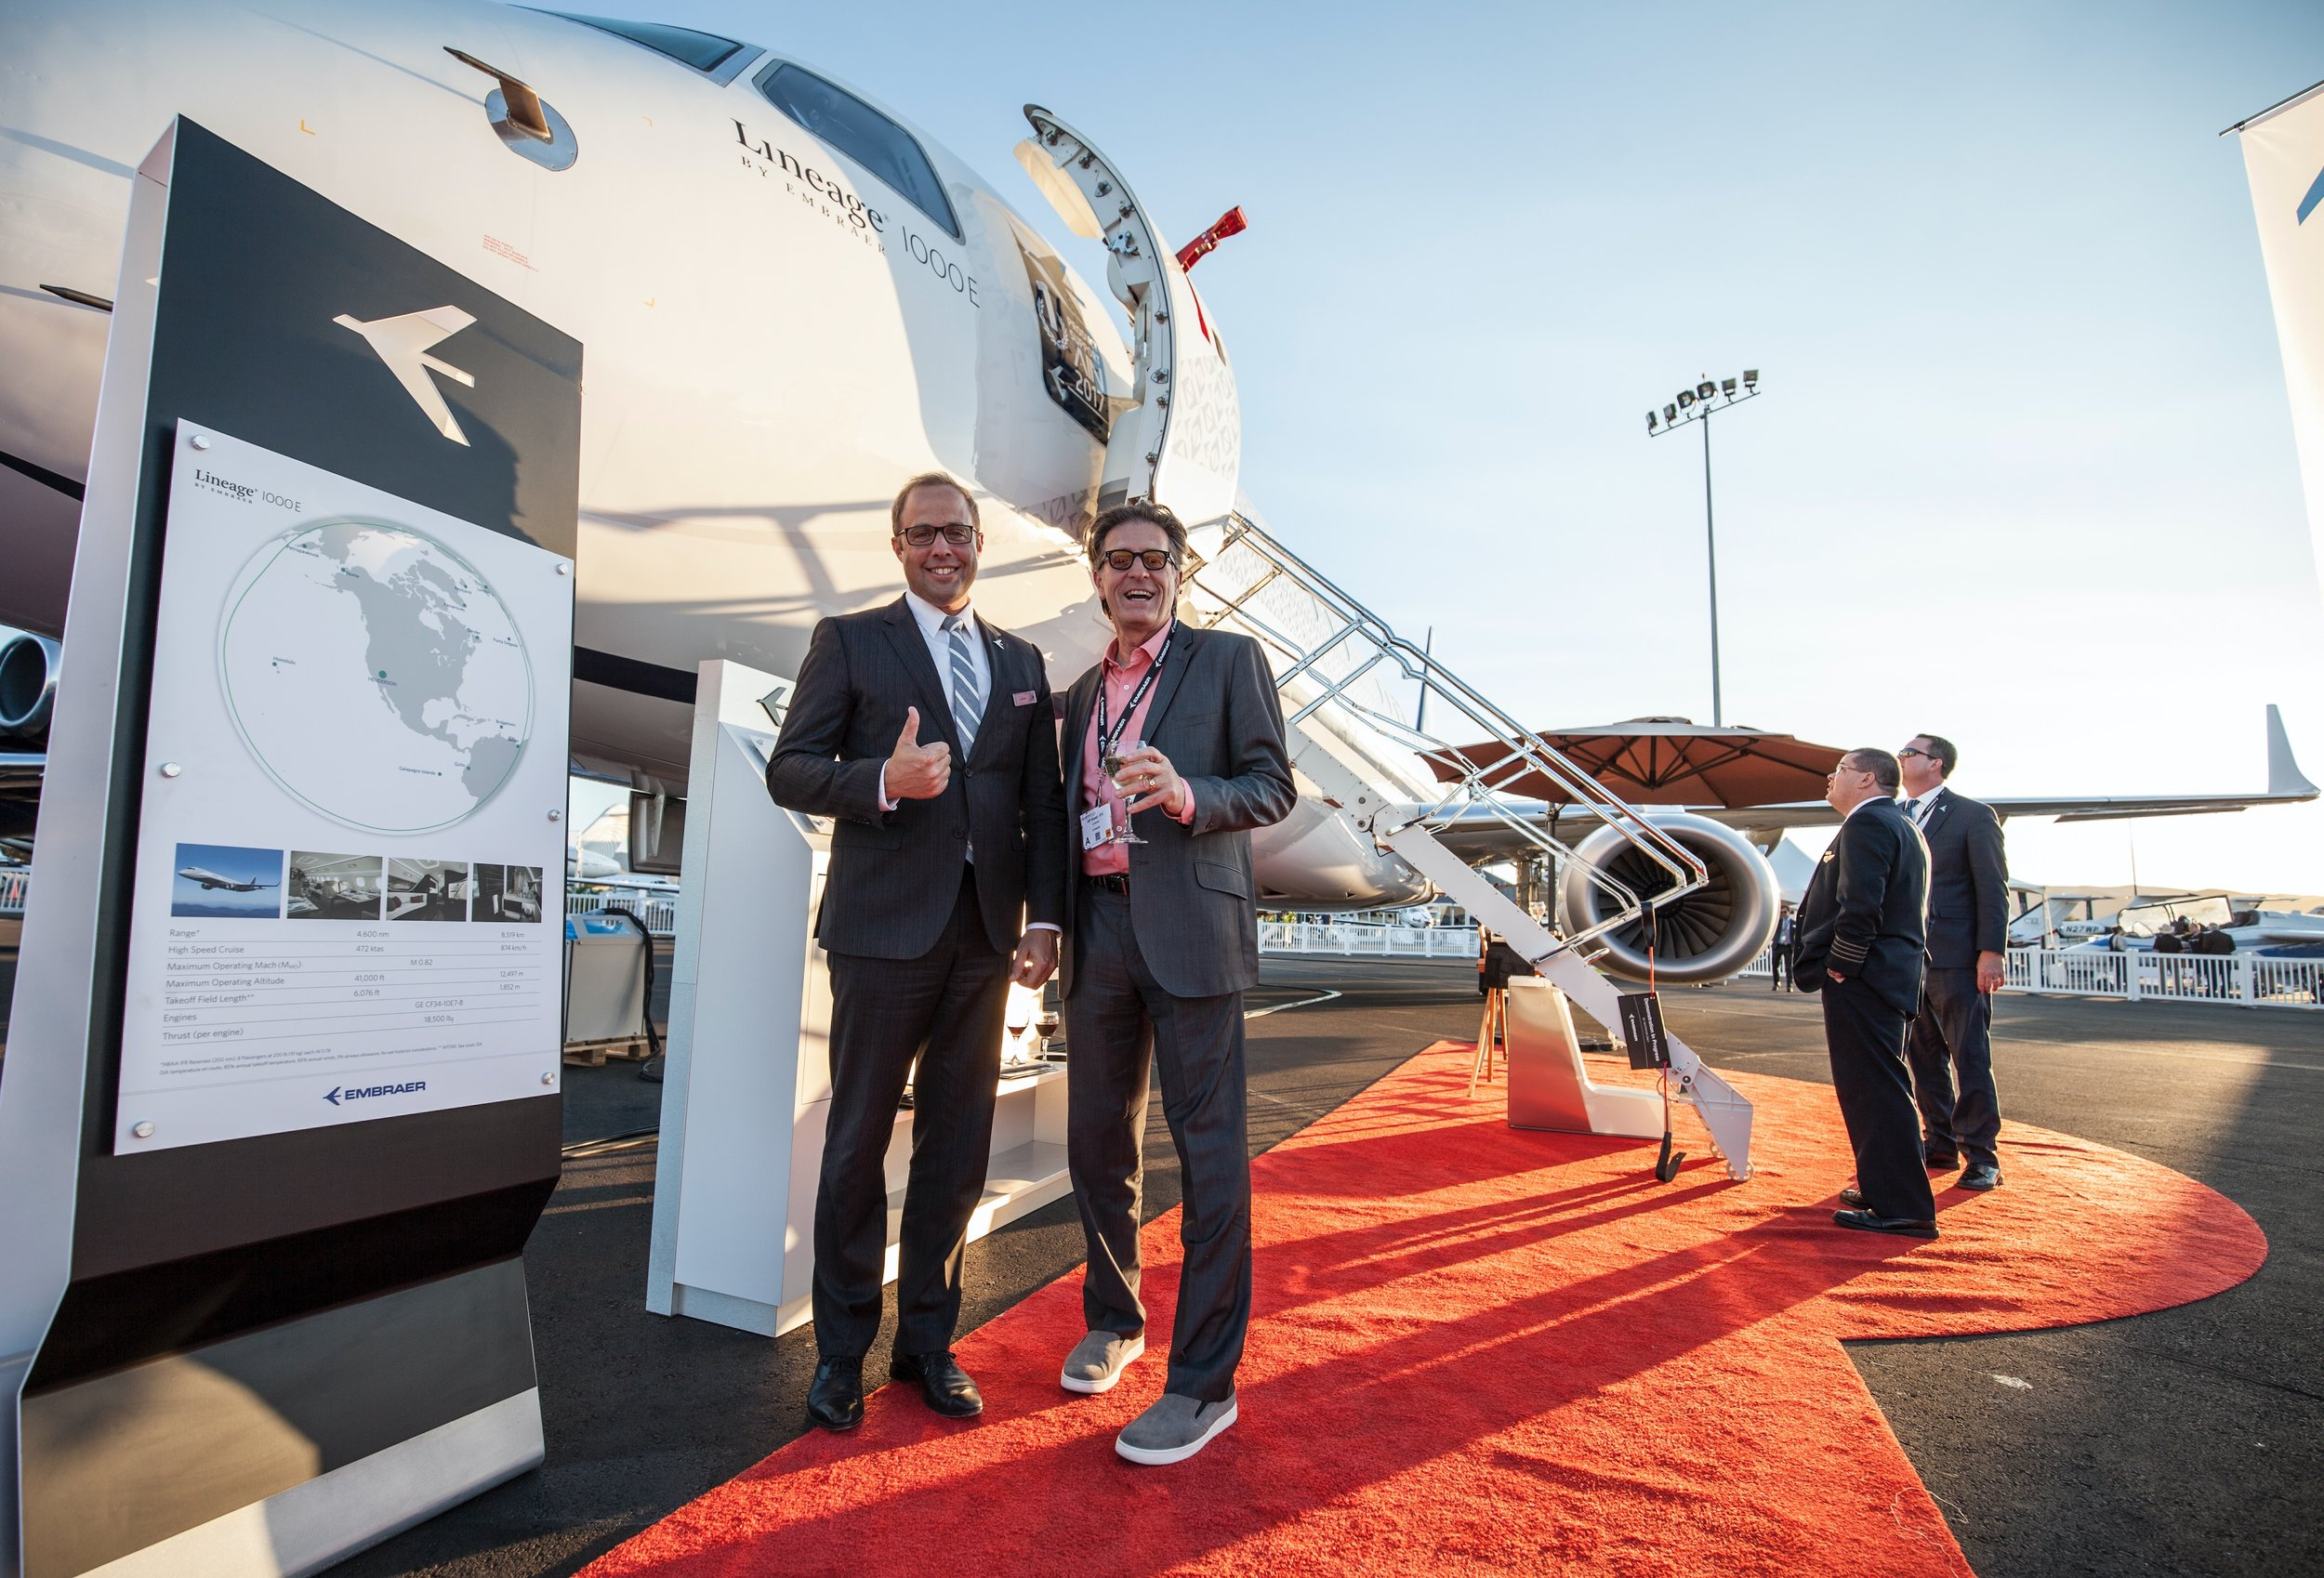 Embraer Design VP Jay Beever and Eddie about to board Embraer's Lineage 1000e.